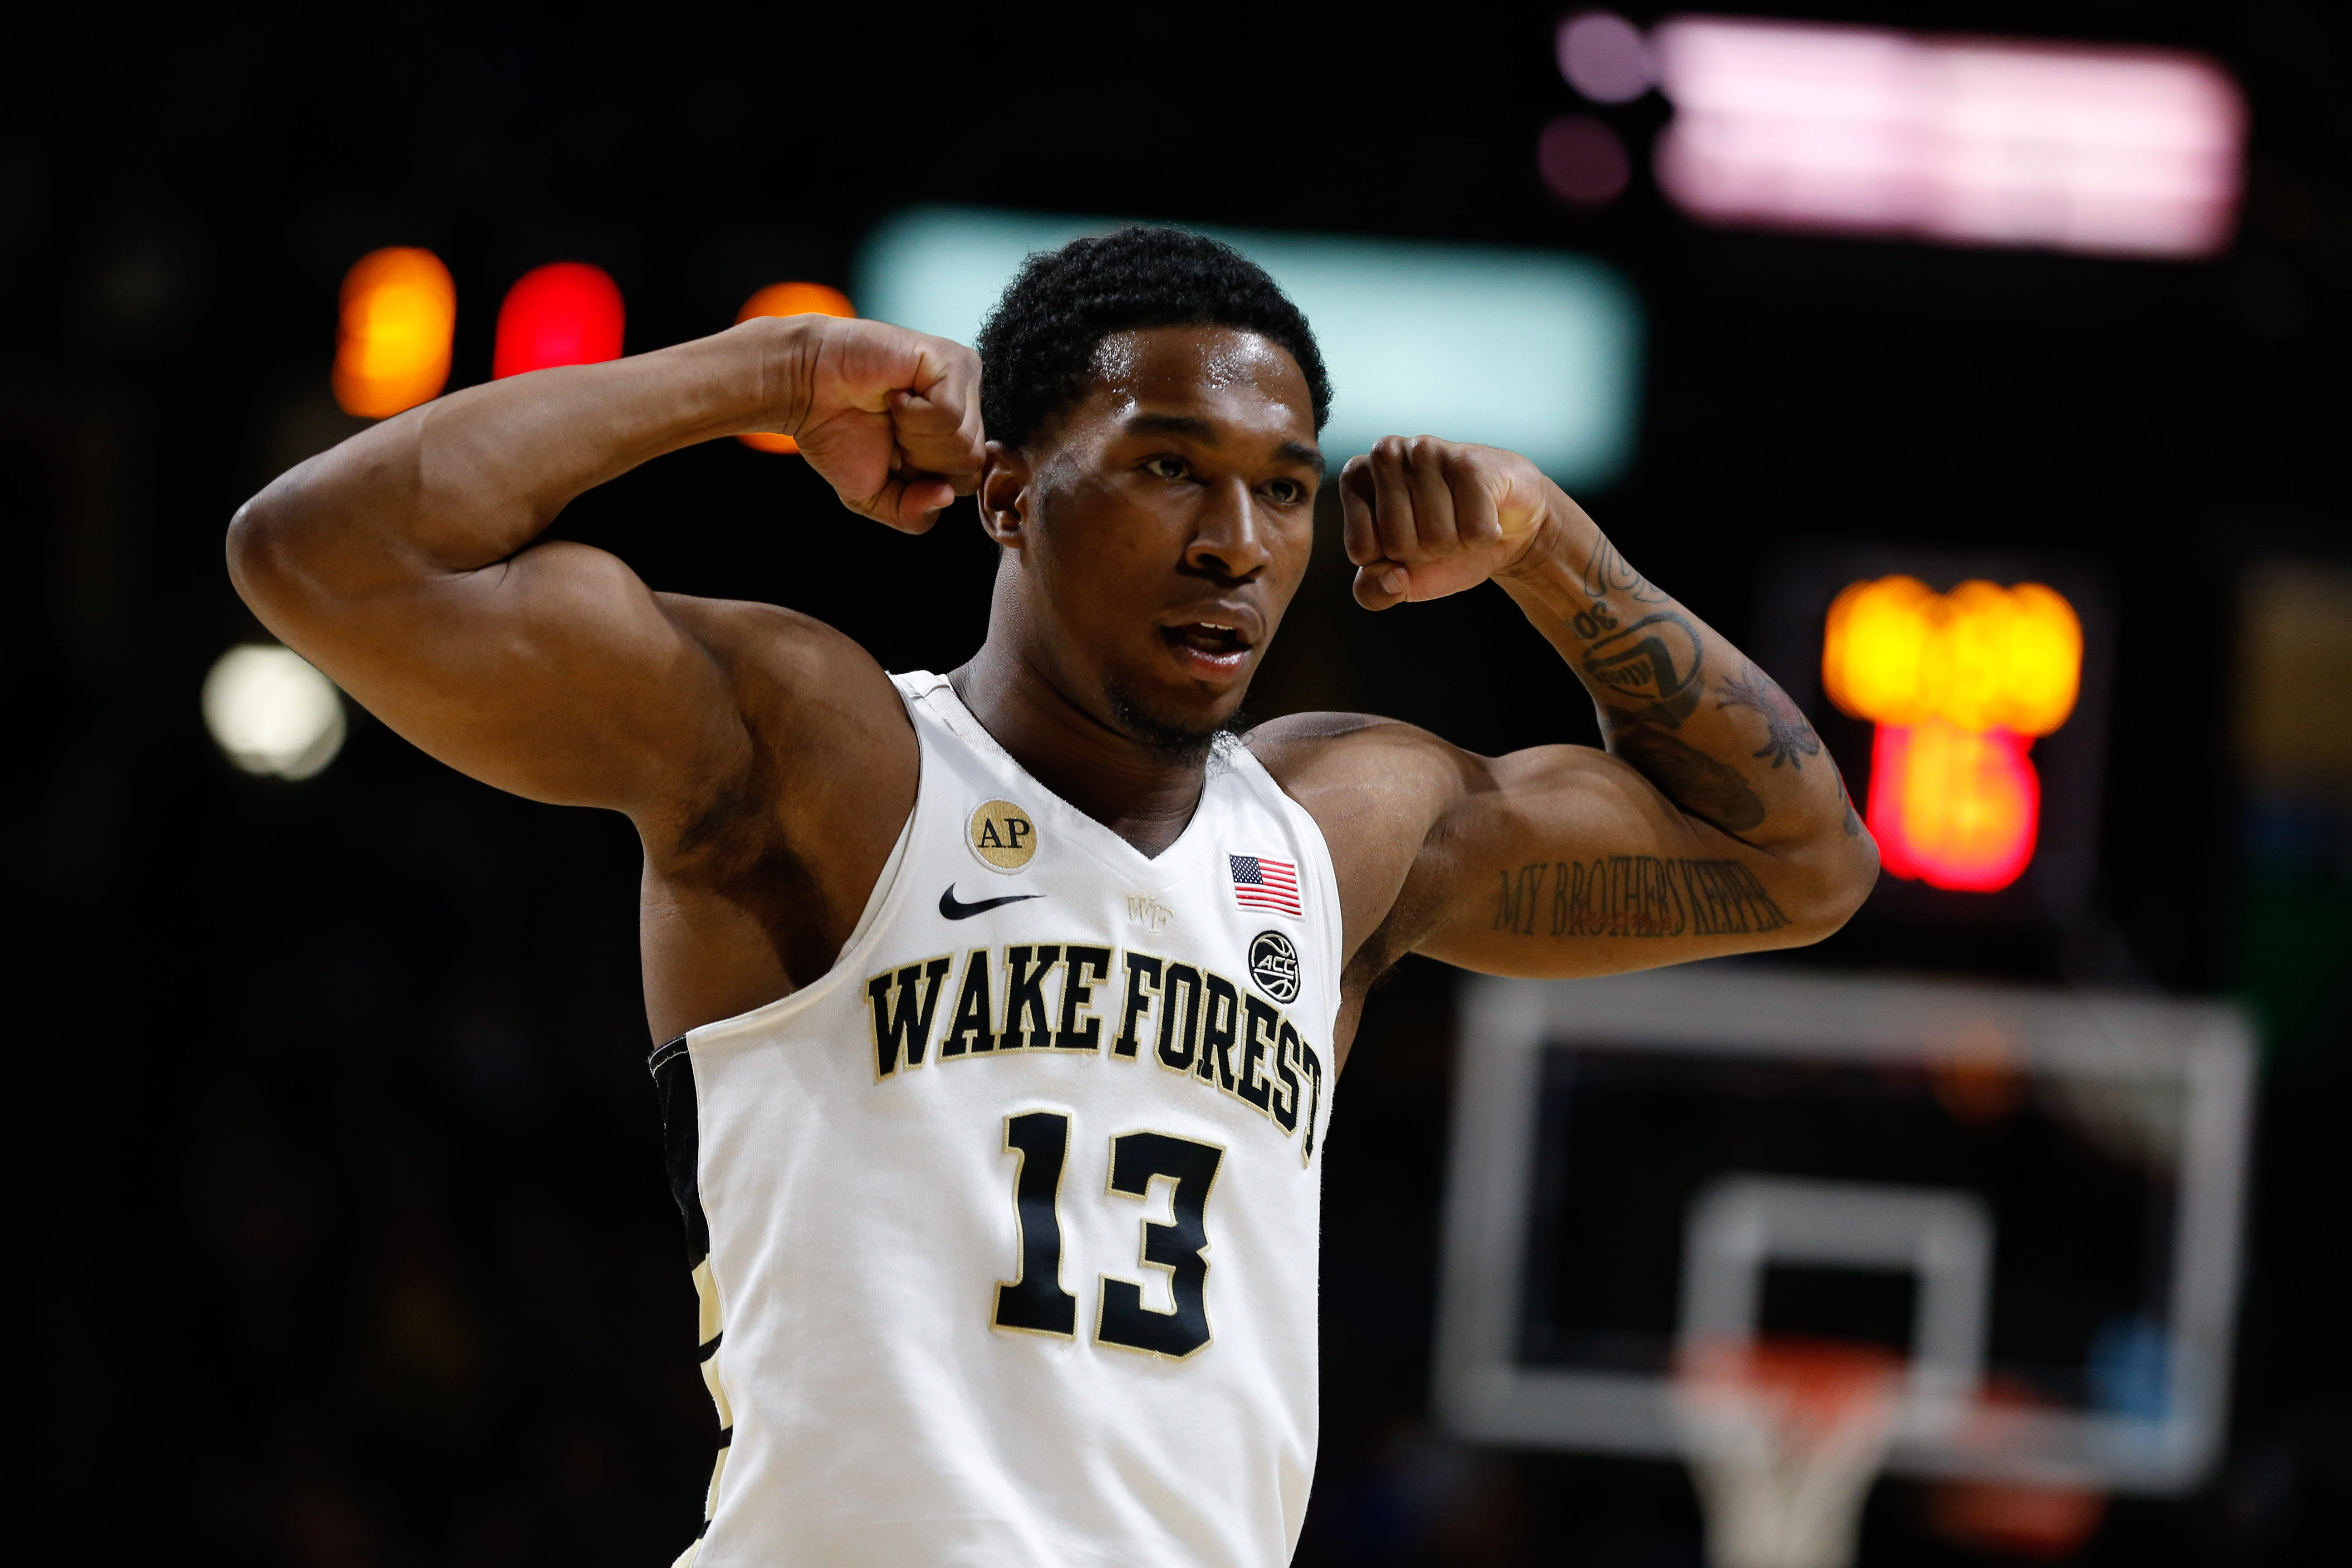 Jan 28, 2017; Winston-Salem, NC, USA; Wake Forest Demon Deacons guard Bryant Crawford (13) reacts after a score in the first half against the Duke Blue Devils at Lawrence Joel Veterans Memorial Coliseum. Mandatory Credit: Jeremy Brevard-USA TODAY Sports